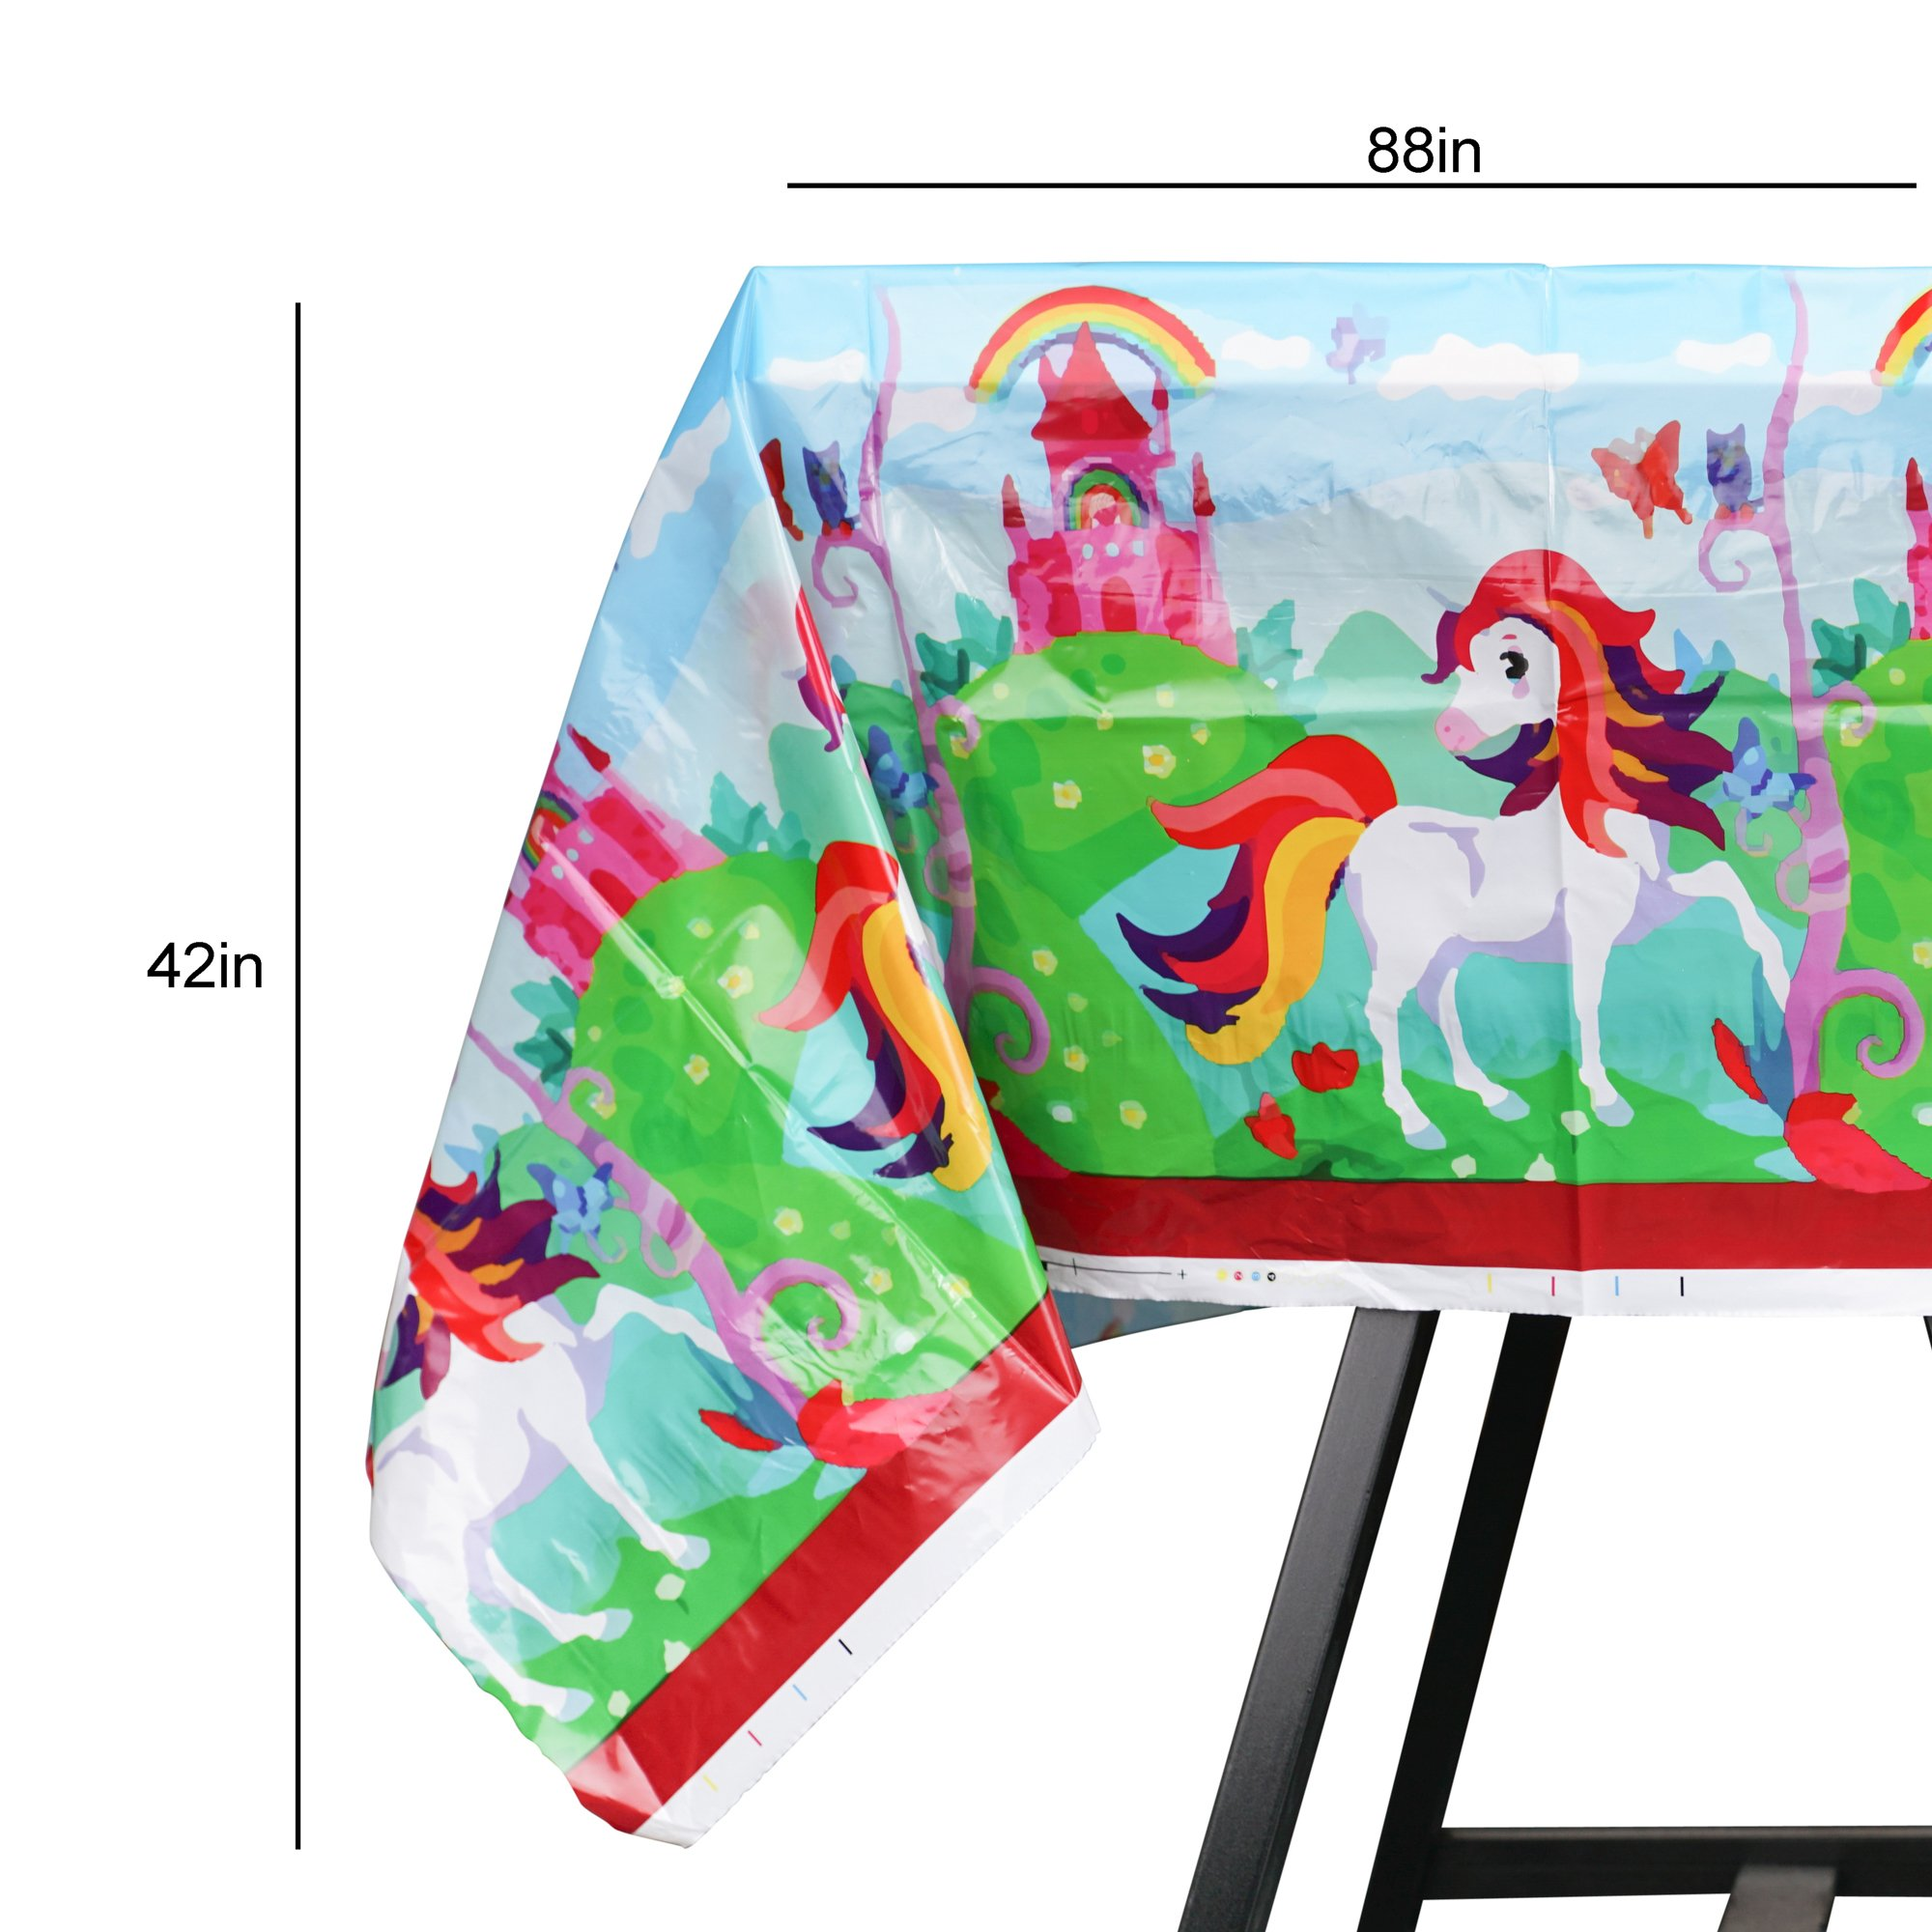 82 Piece Unicorn Party Supplies Set Including Banner, Plates, Cups, Napkins and Tablecloth, Serves 20 by Scale Rank (Image #6)